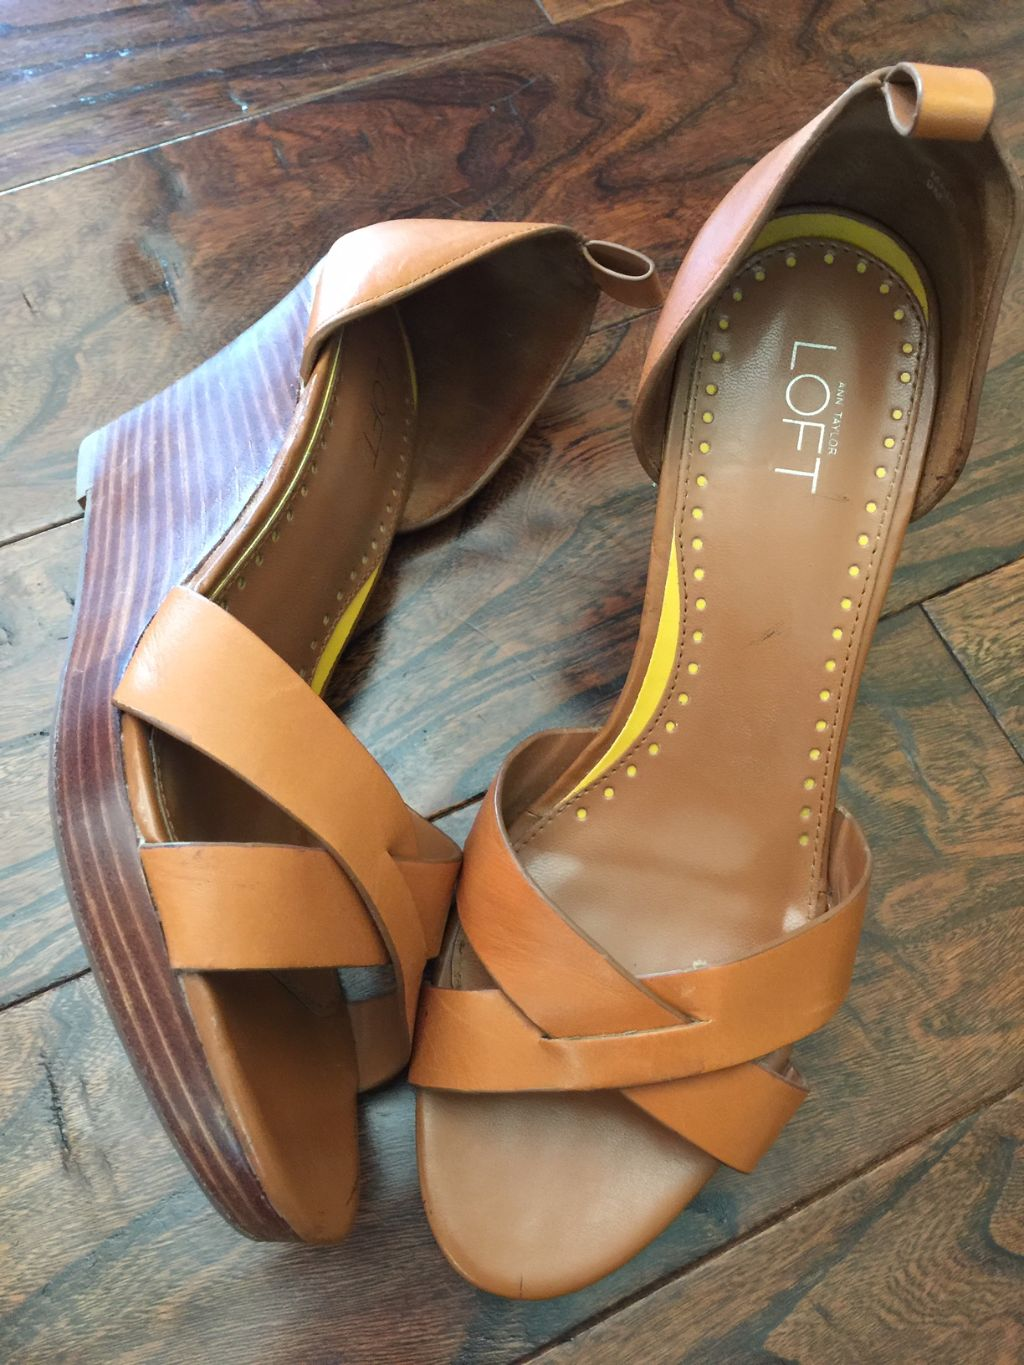 Pre-Loved Women's Shoes: Leather Ann Taylor Loft Wedges Size 9/9.5 *CLEARANCE*